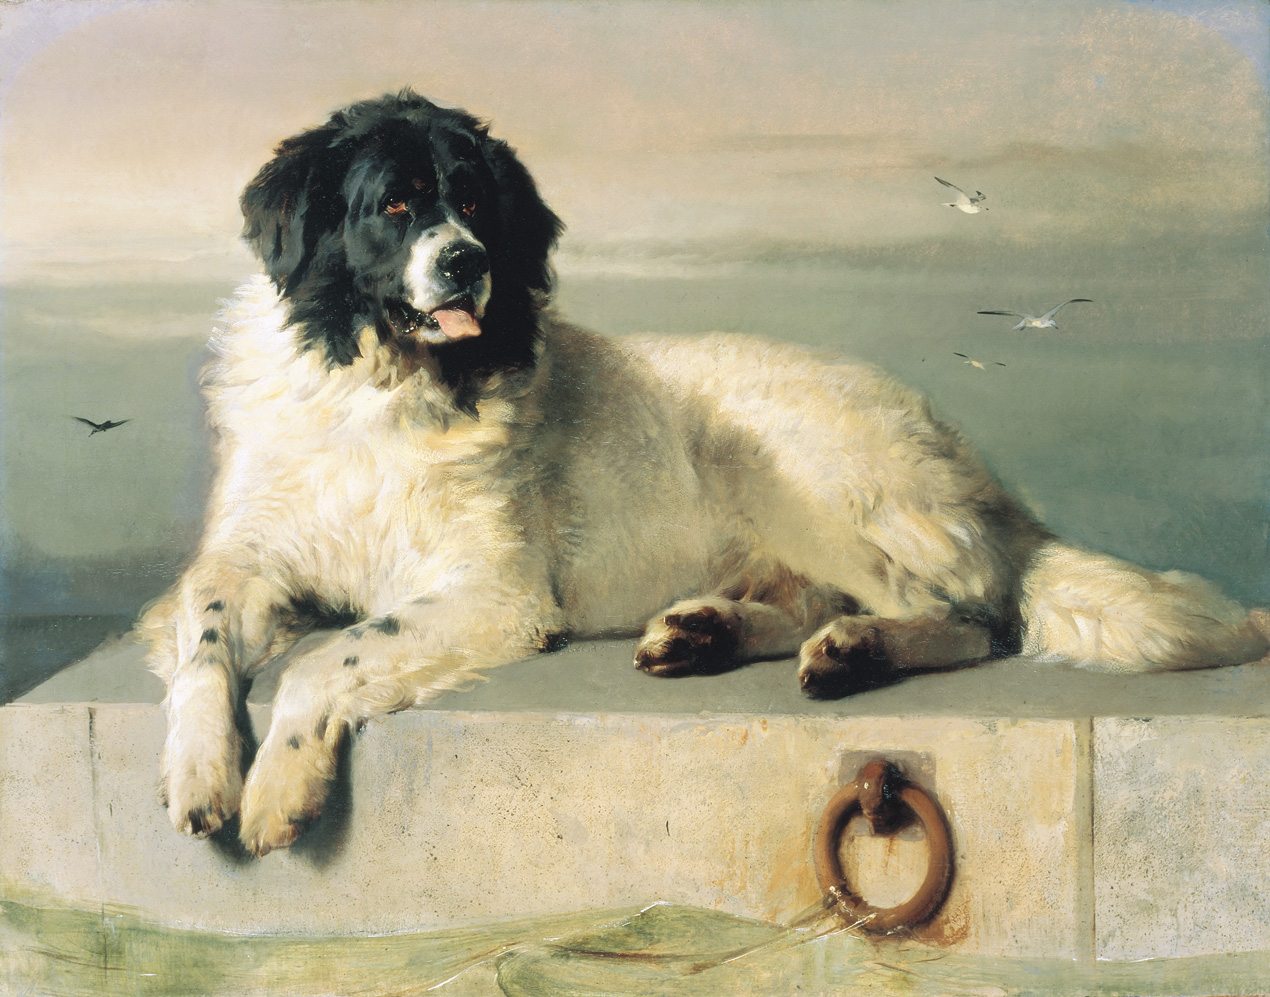 Drawn Landseer dog wallpaper